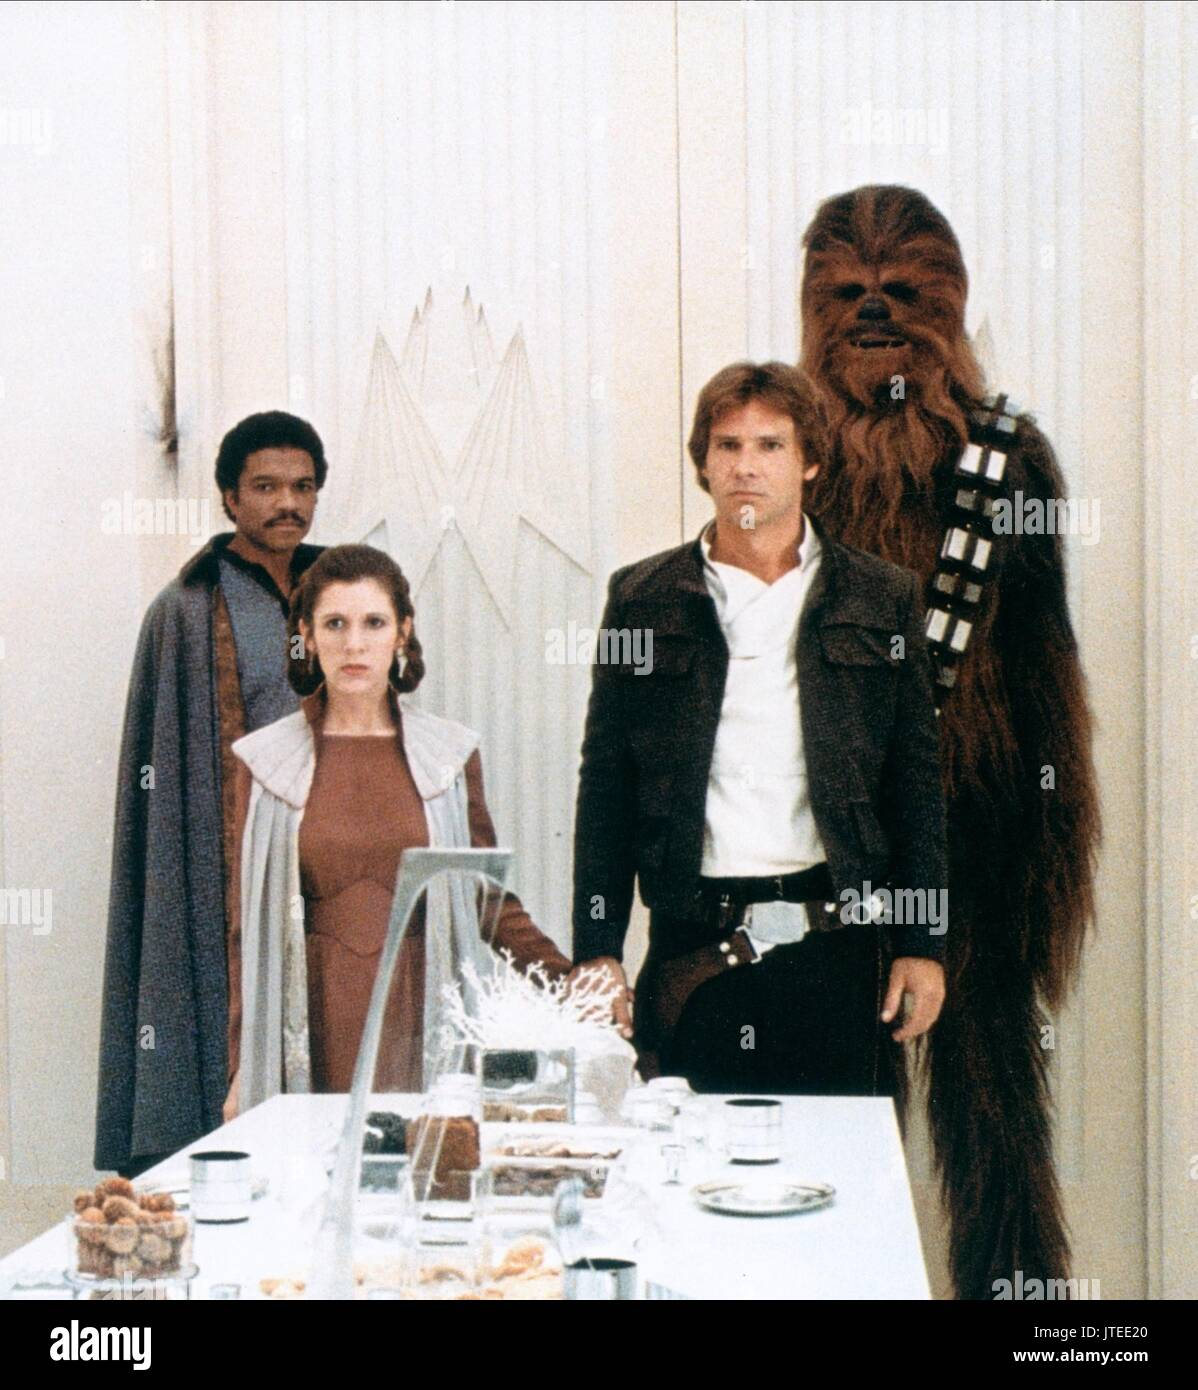 BILLY DEE WILLIAMS, CARRIE FISHER, HARRISON FORD, PETER MAYHEW, STAR WARS: EPISODE V - THE EMPIRE STRIKES BACK, 1980 - Stock Image